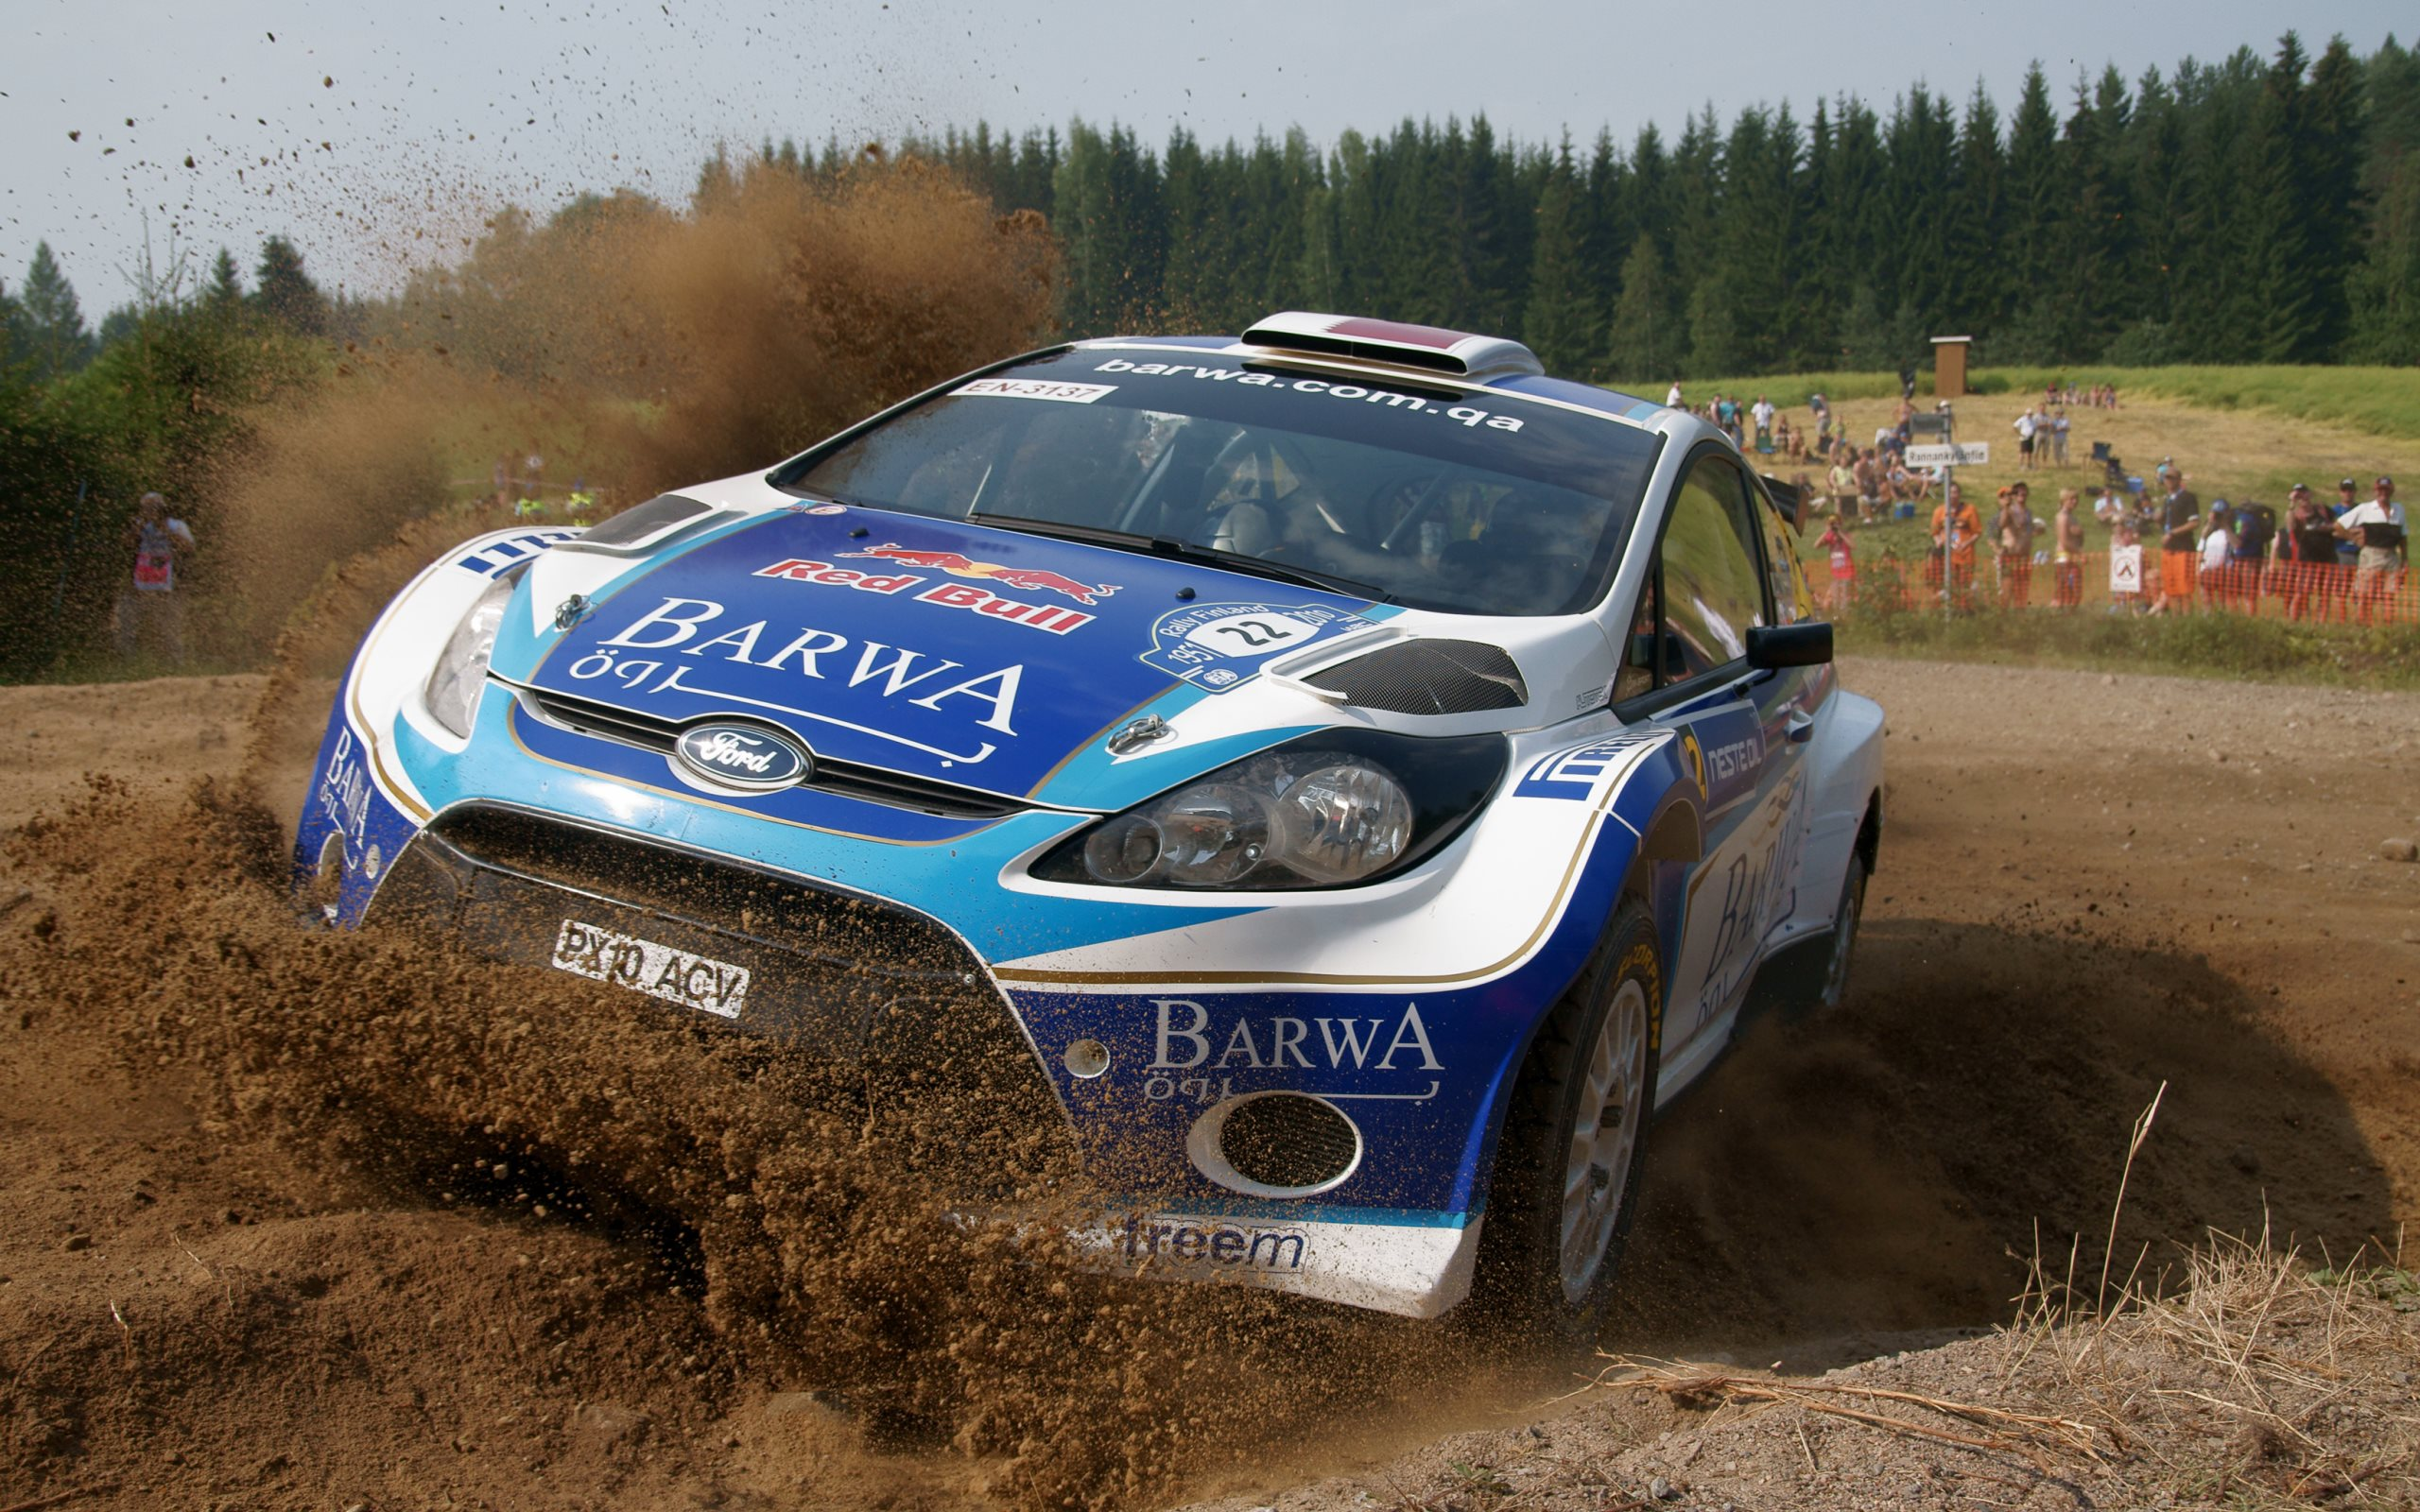 2560x1600 - Rallying Wallpapers 8